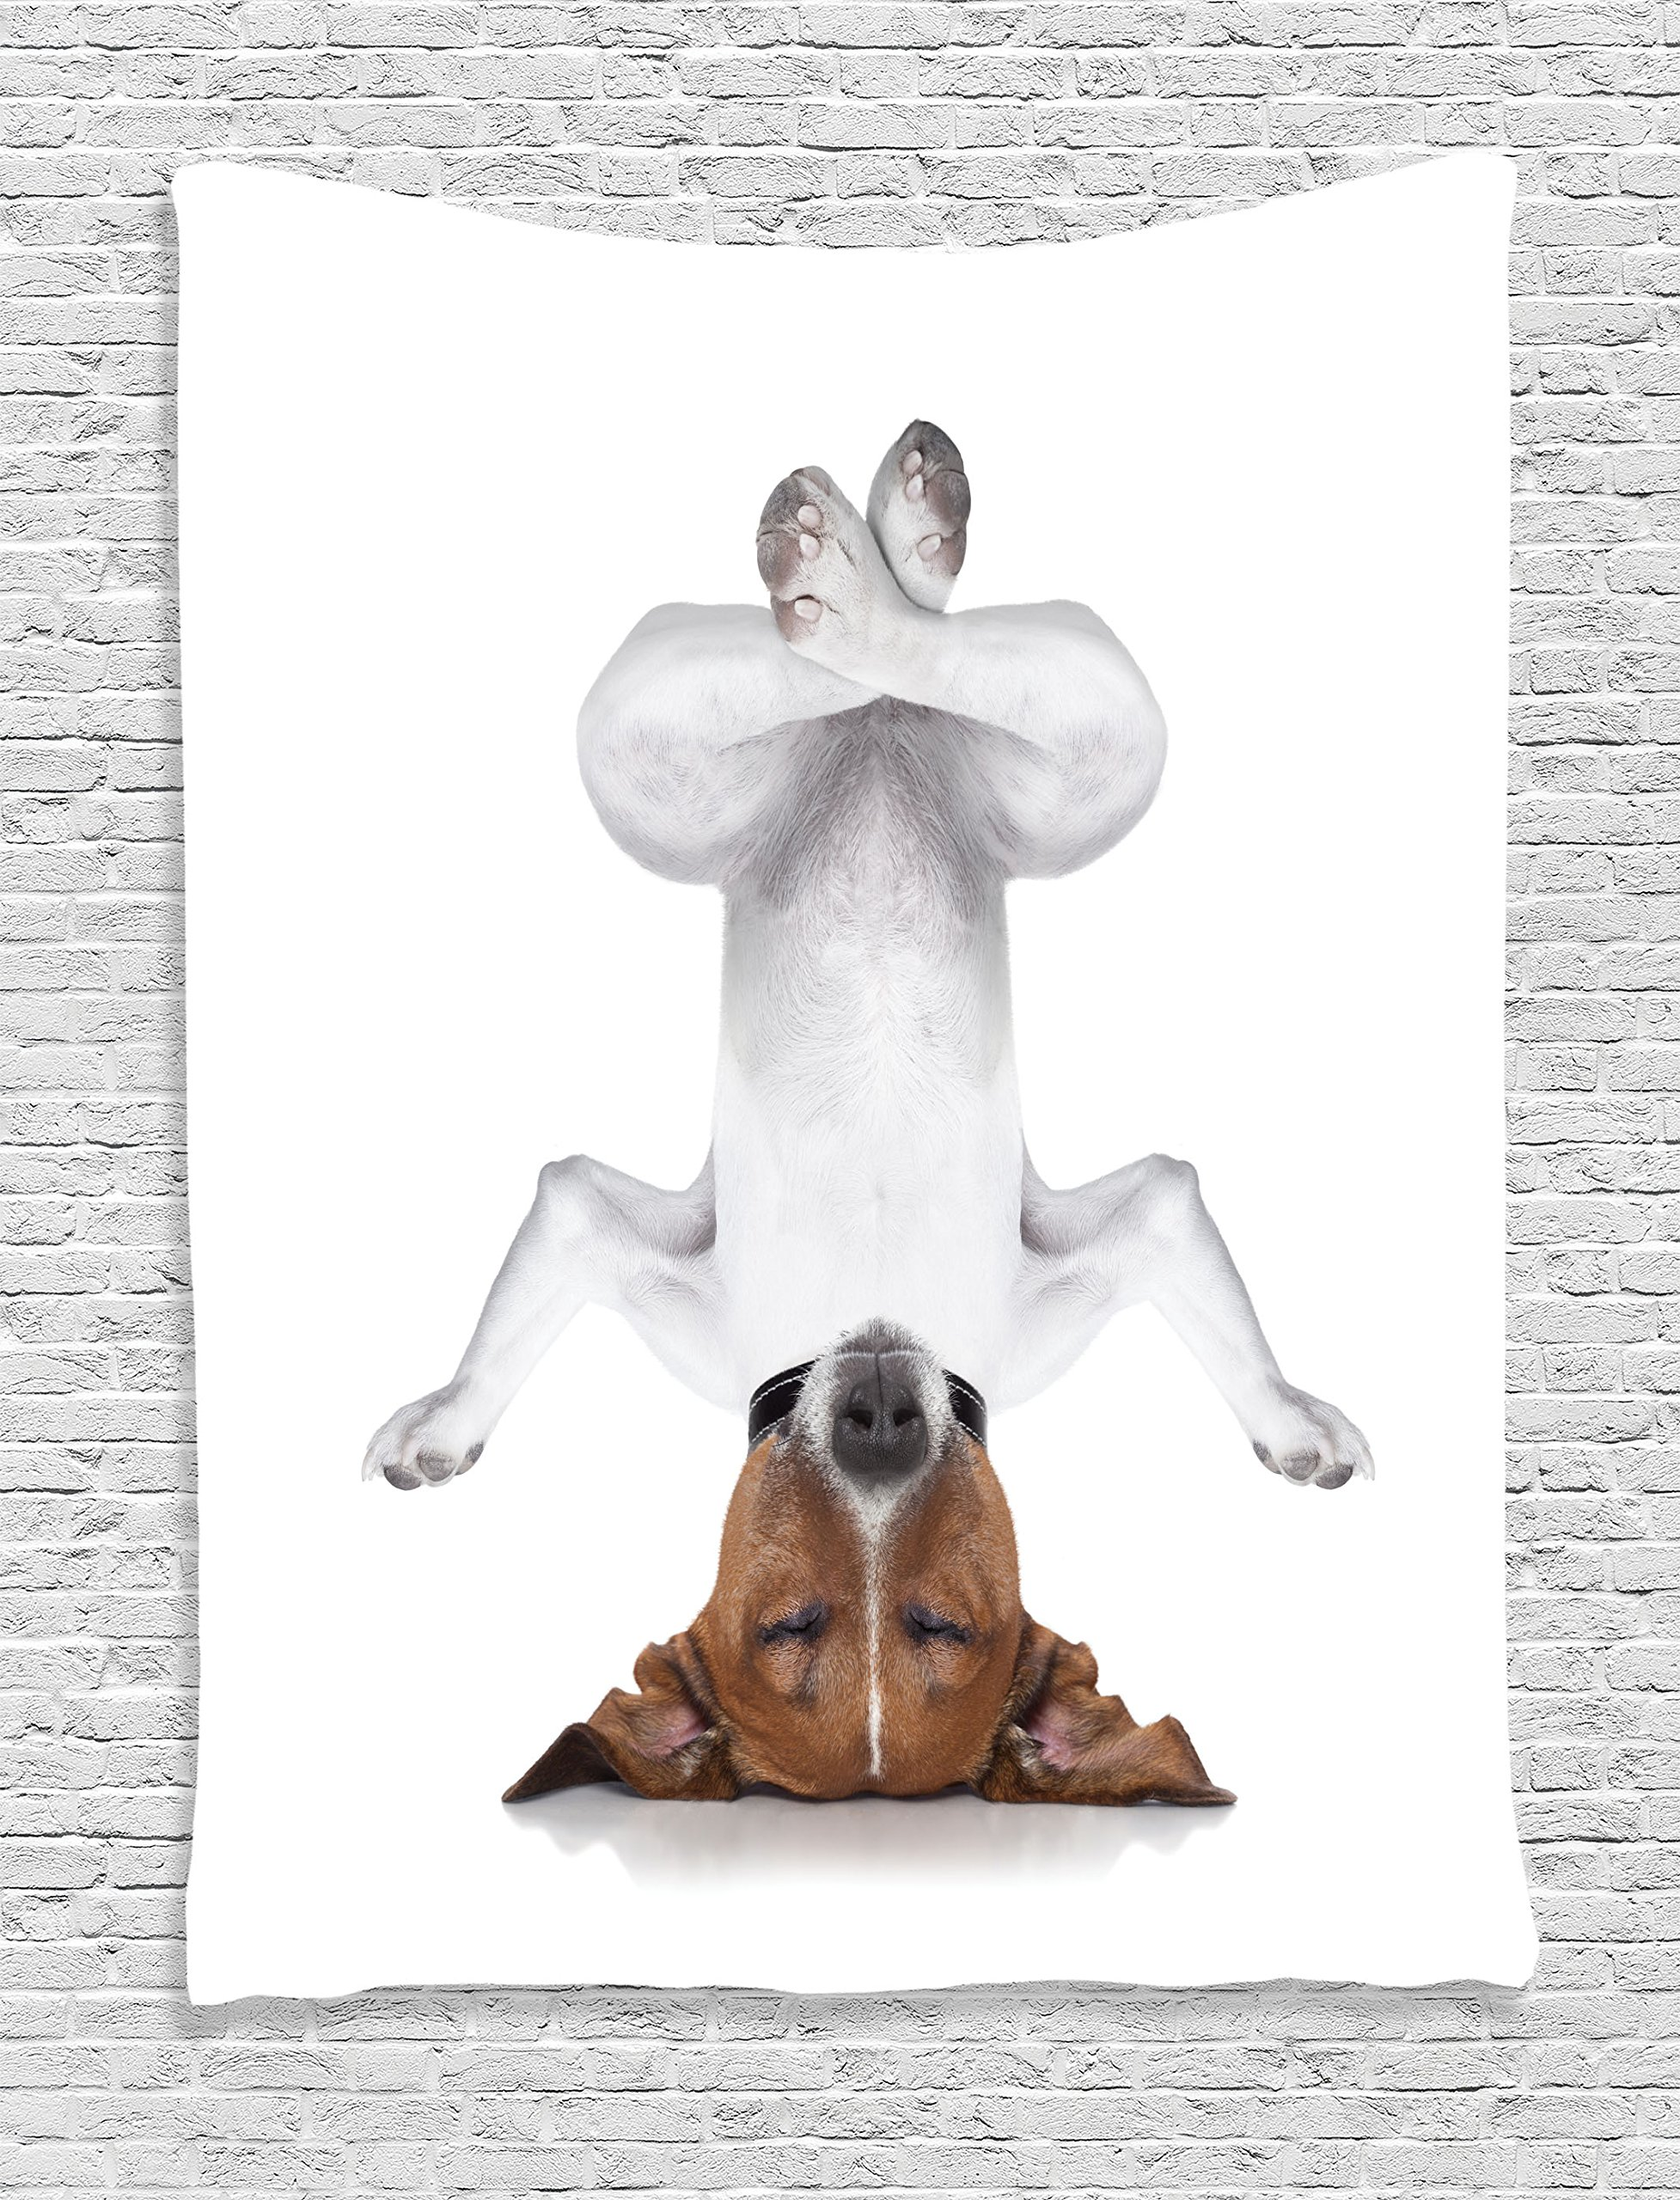 Ambesonne Yoga Decor Tapestry, Dog Upside Down Relaxing with Closed Eyes and Doing Yoga Calm Therapy Humor Animal Print, Bedroom Living Room Dorm Decor, 40 W x 60 L inches, White Brown